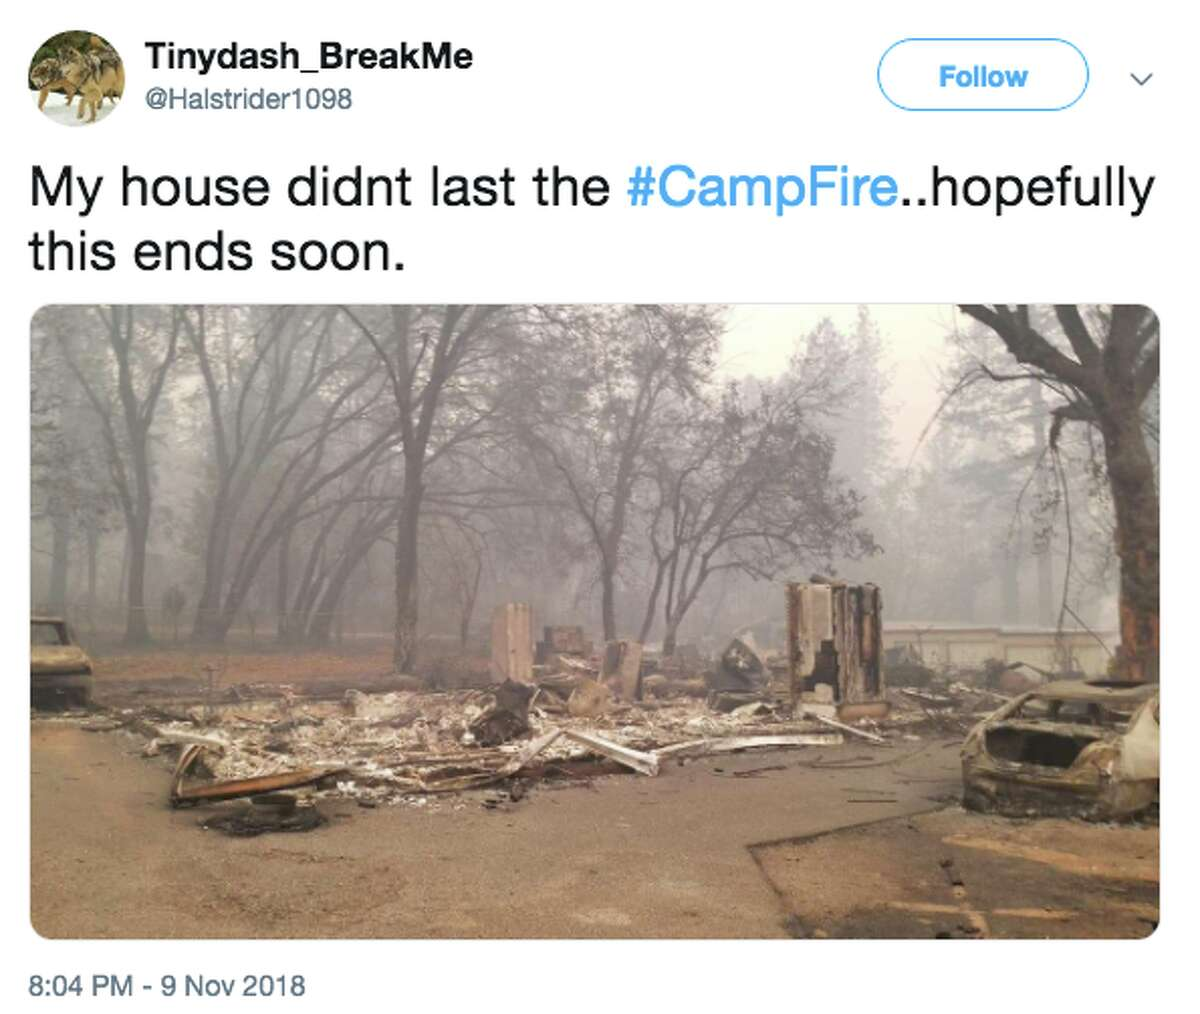 """@Halstrider1098 tweeted, """"My house didn't last the #Campfire"""" on Friday, Nov. 9, 2018."""